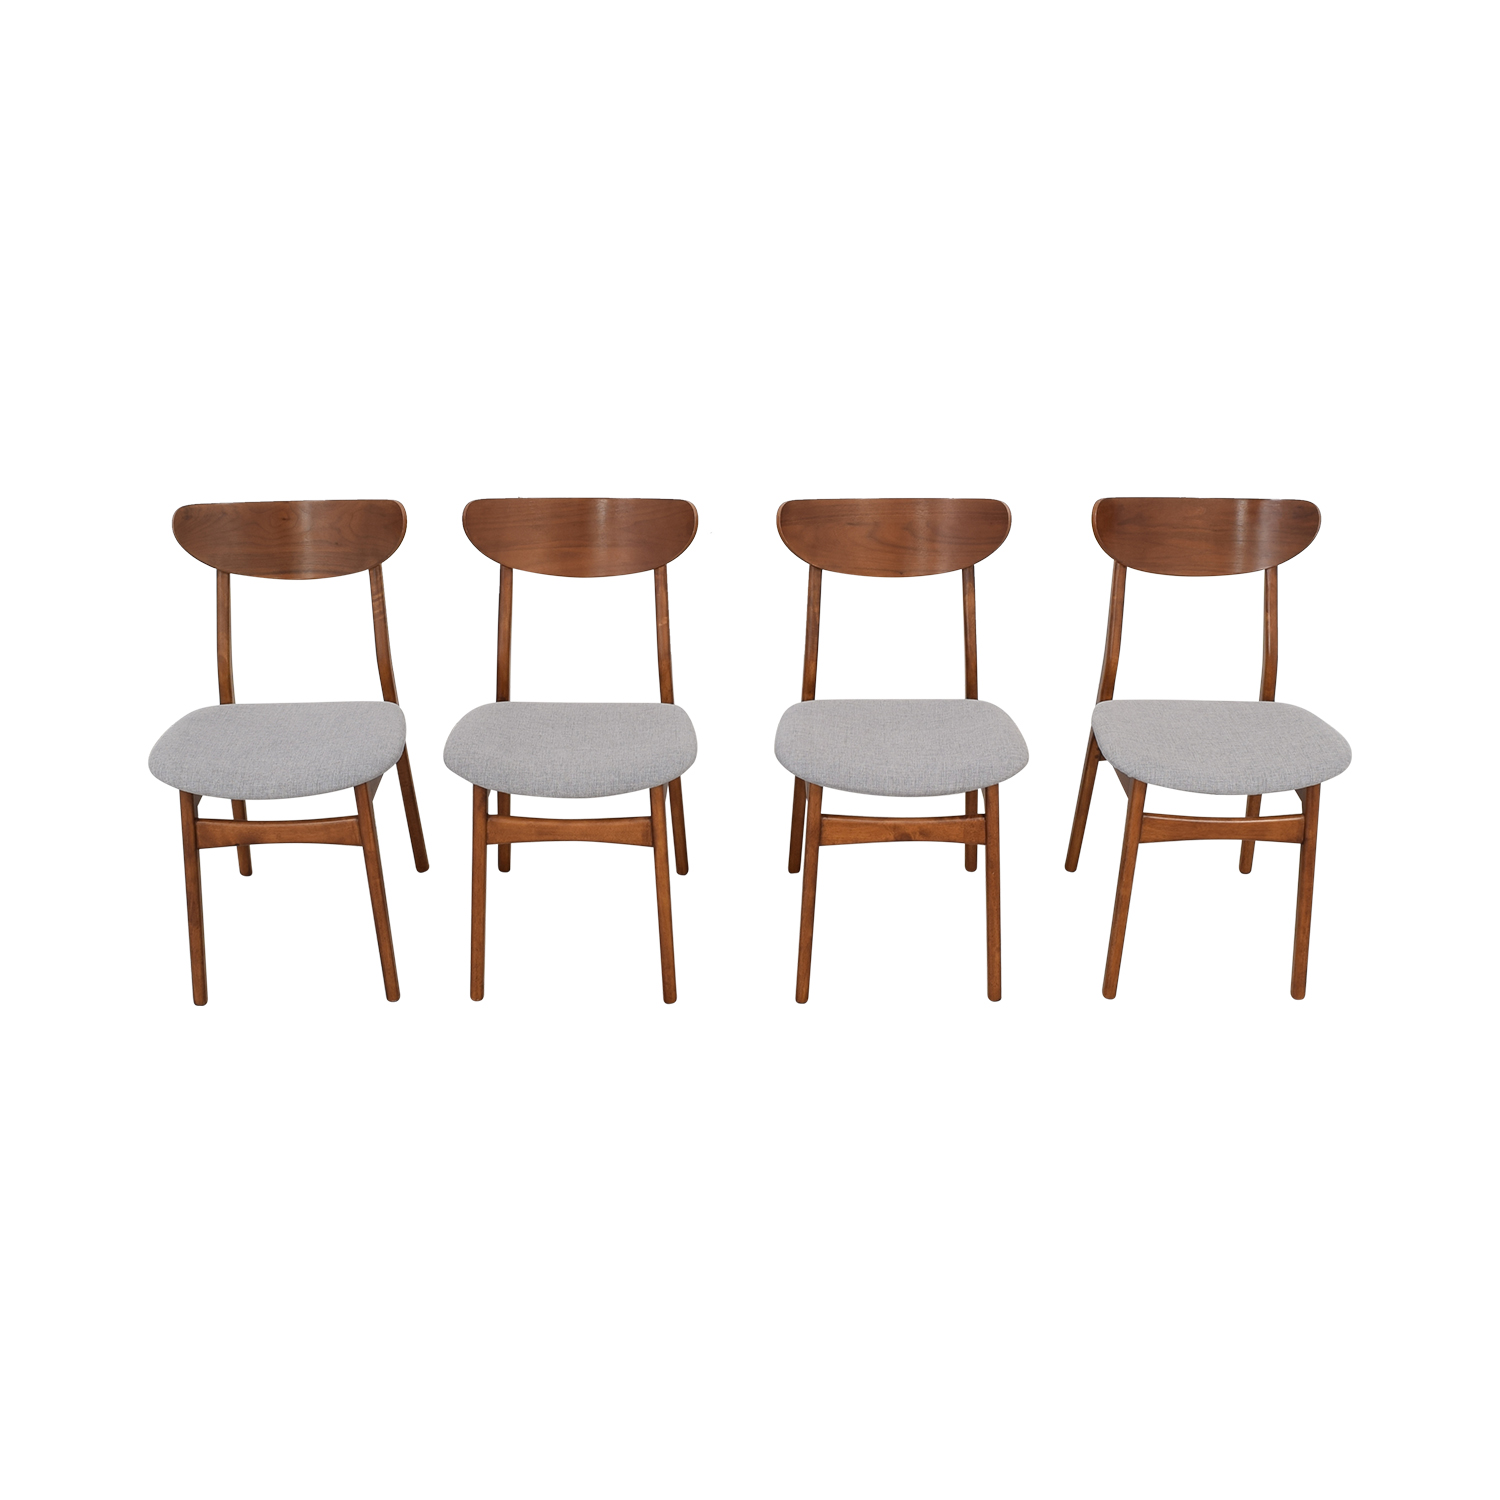 West Elm West Elm Classic Café Upholstered Dining Chairs pa